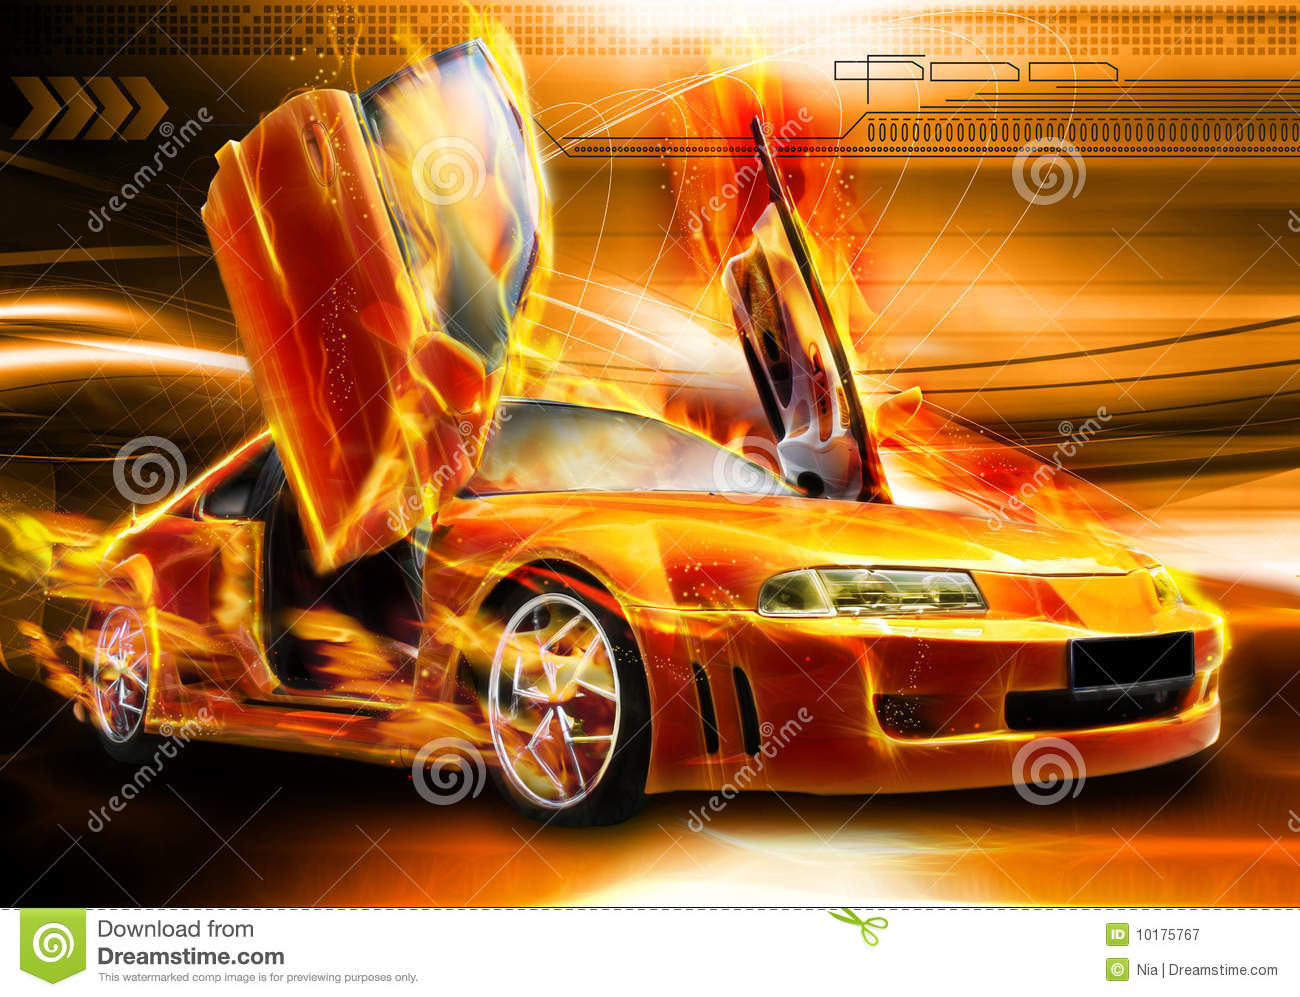 Danger Girl Wallpapers Free Burning Car Background Royalty Free Stock Photography